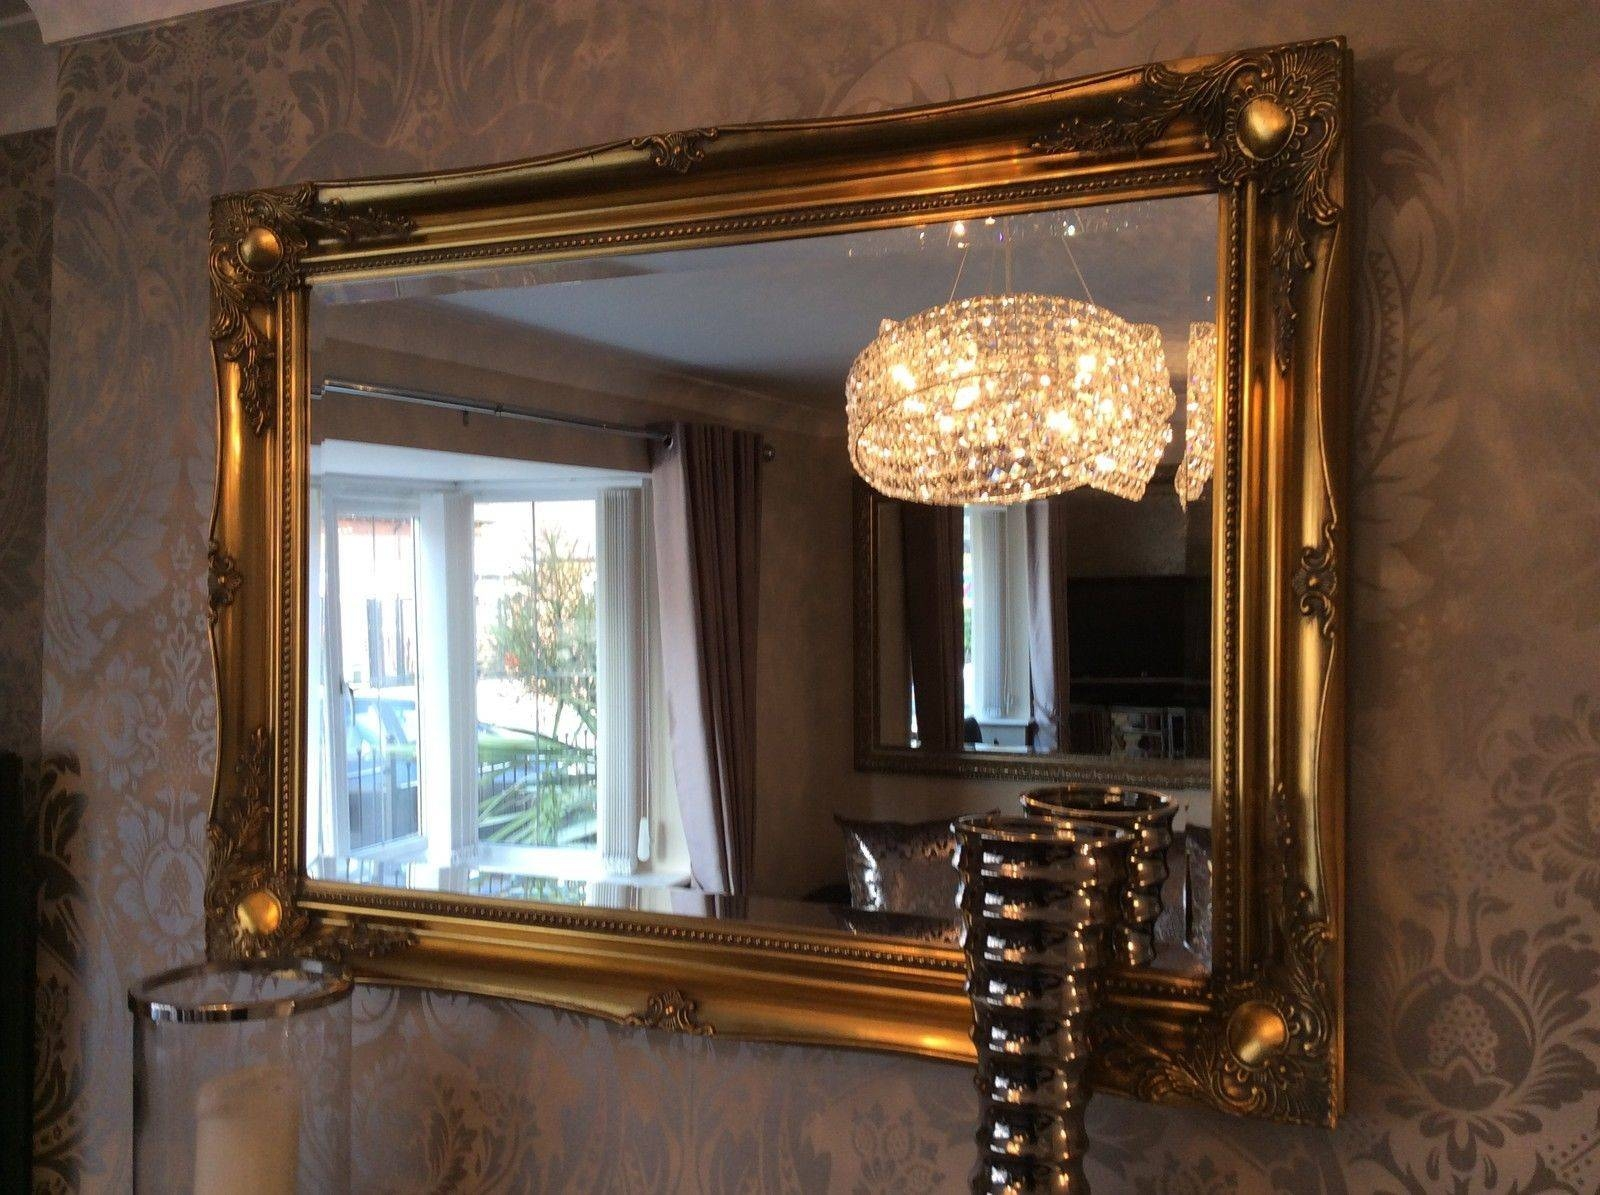 Decorative Gold Mirrors. Gold Decorative Framed Bevelled Wall pertaining to Antiqued Wall Mirrors (Image 13 of 25)